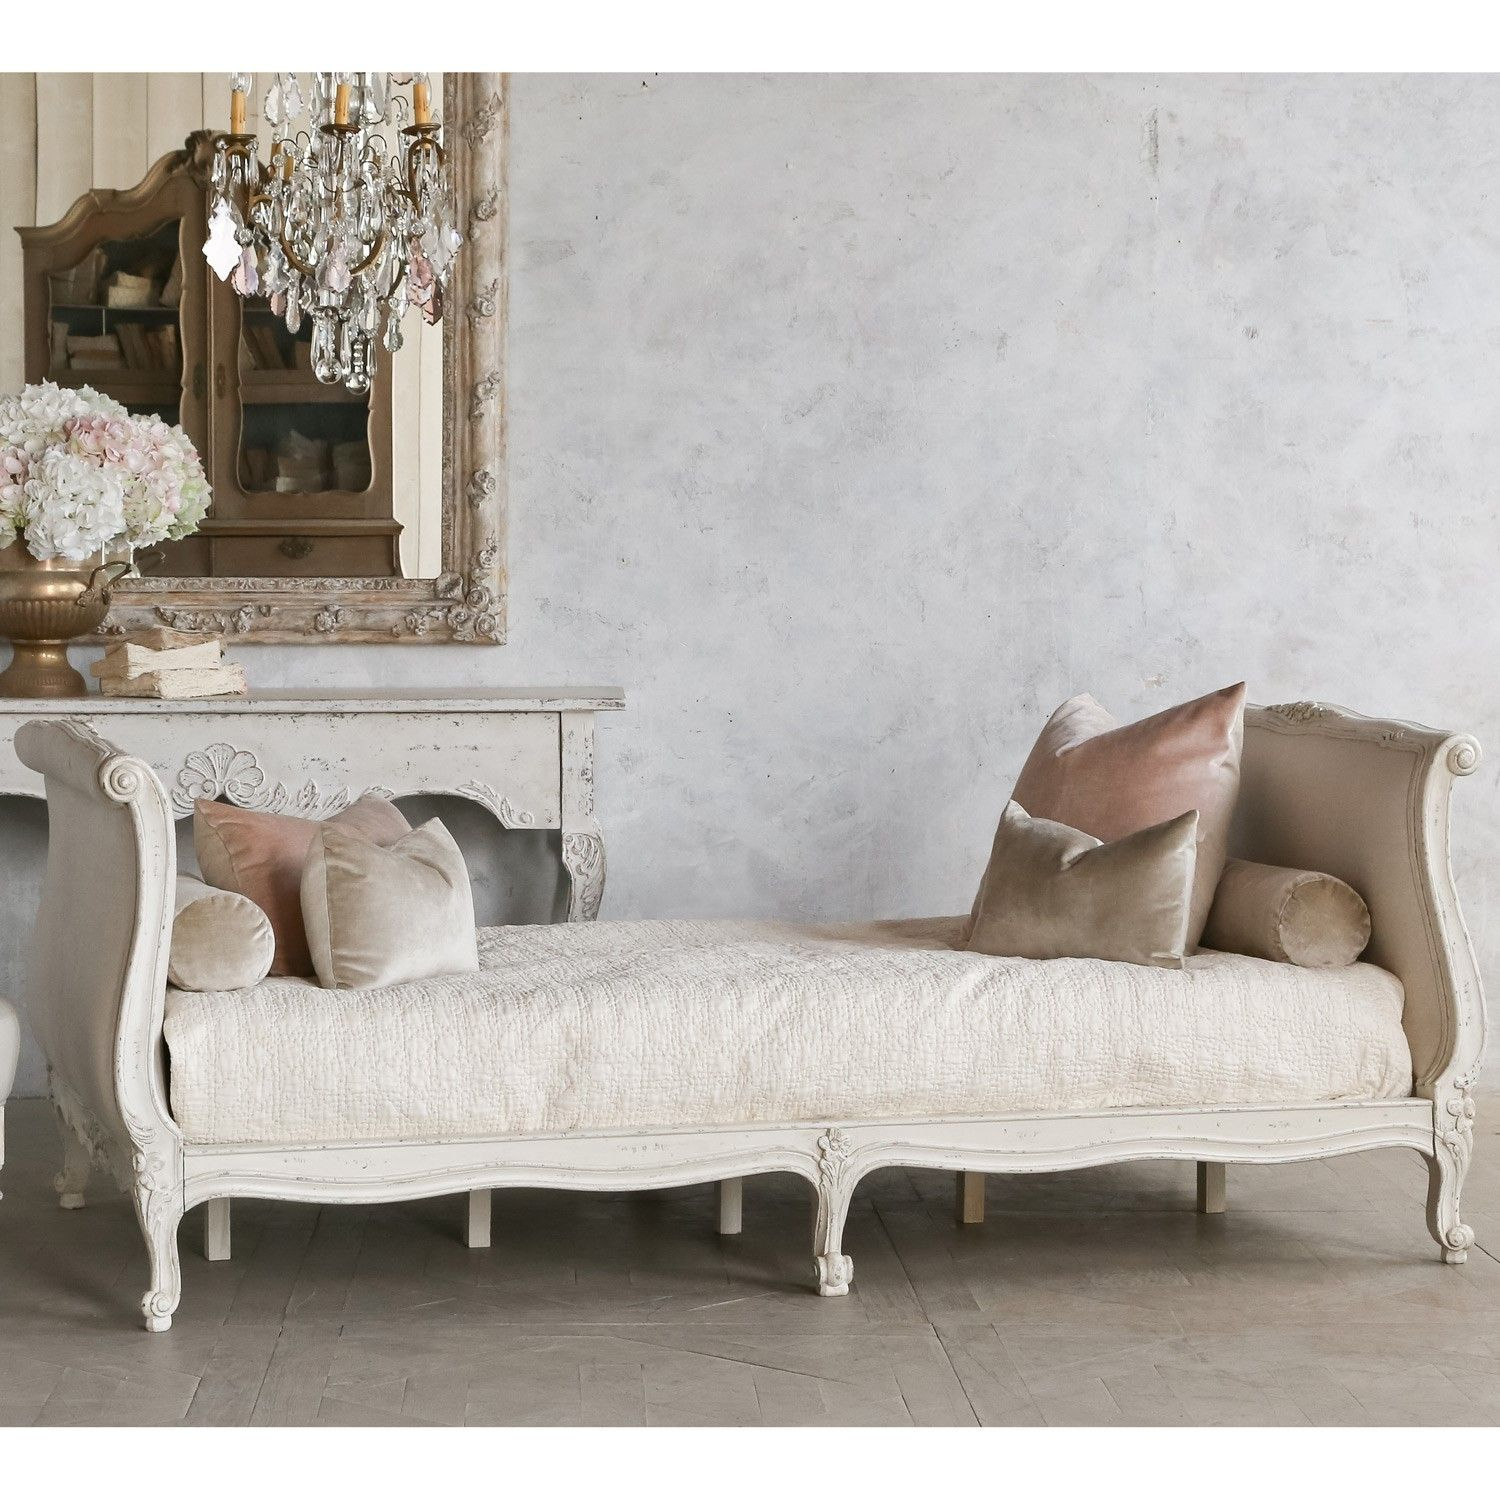 Twin Clignancourt Daybed in Swedish Antique White